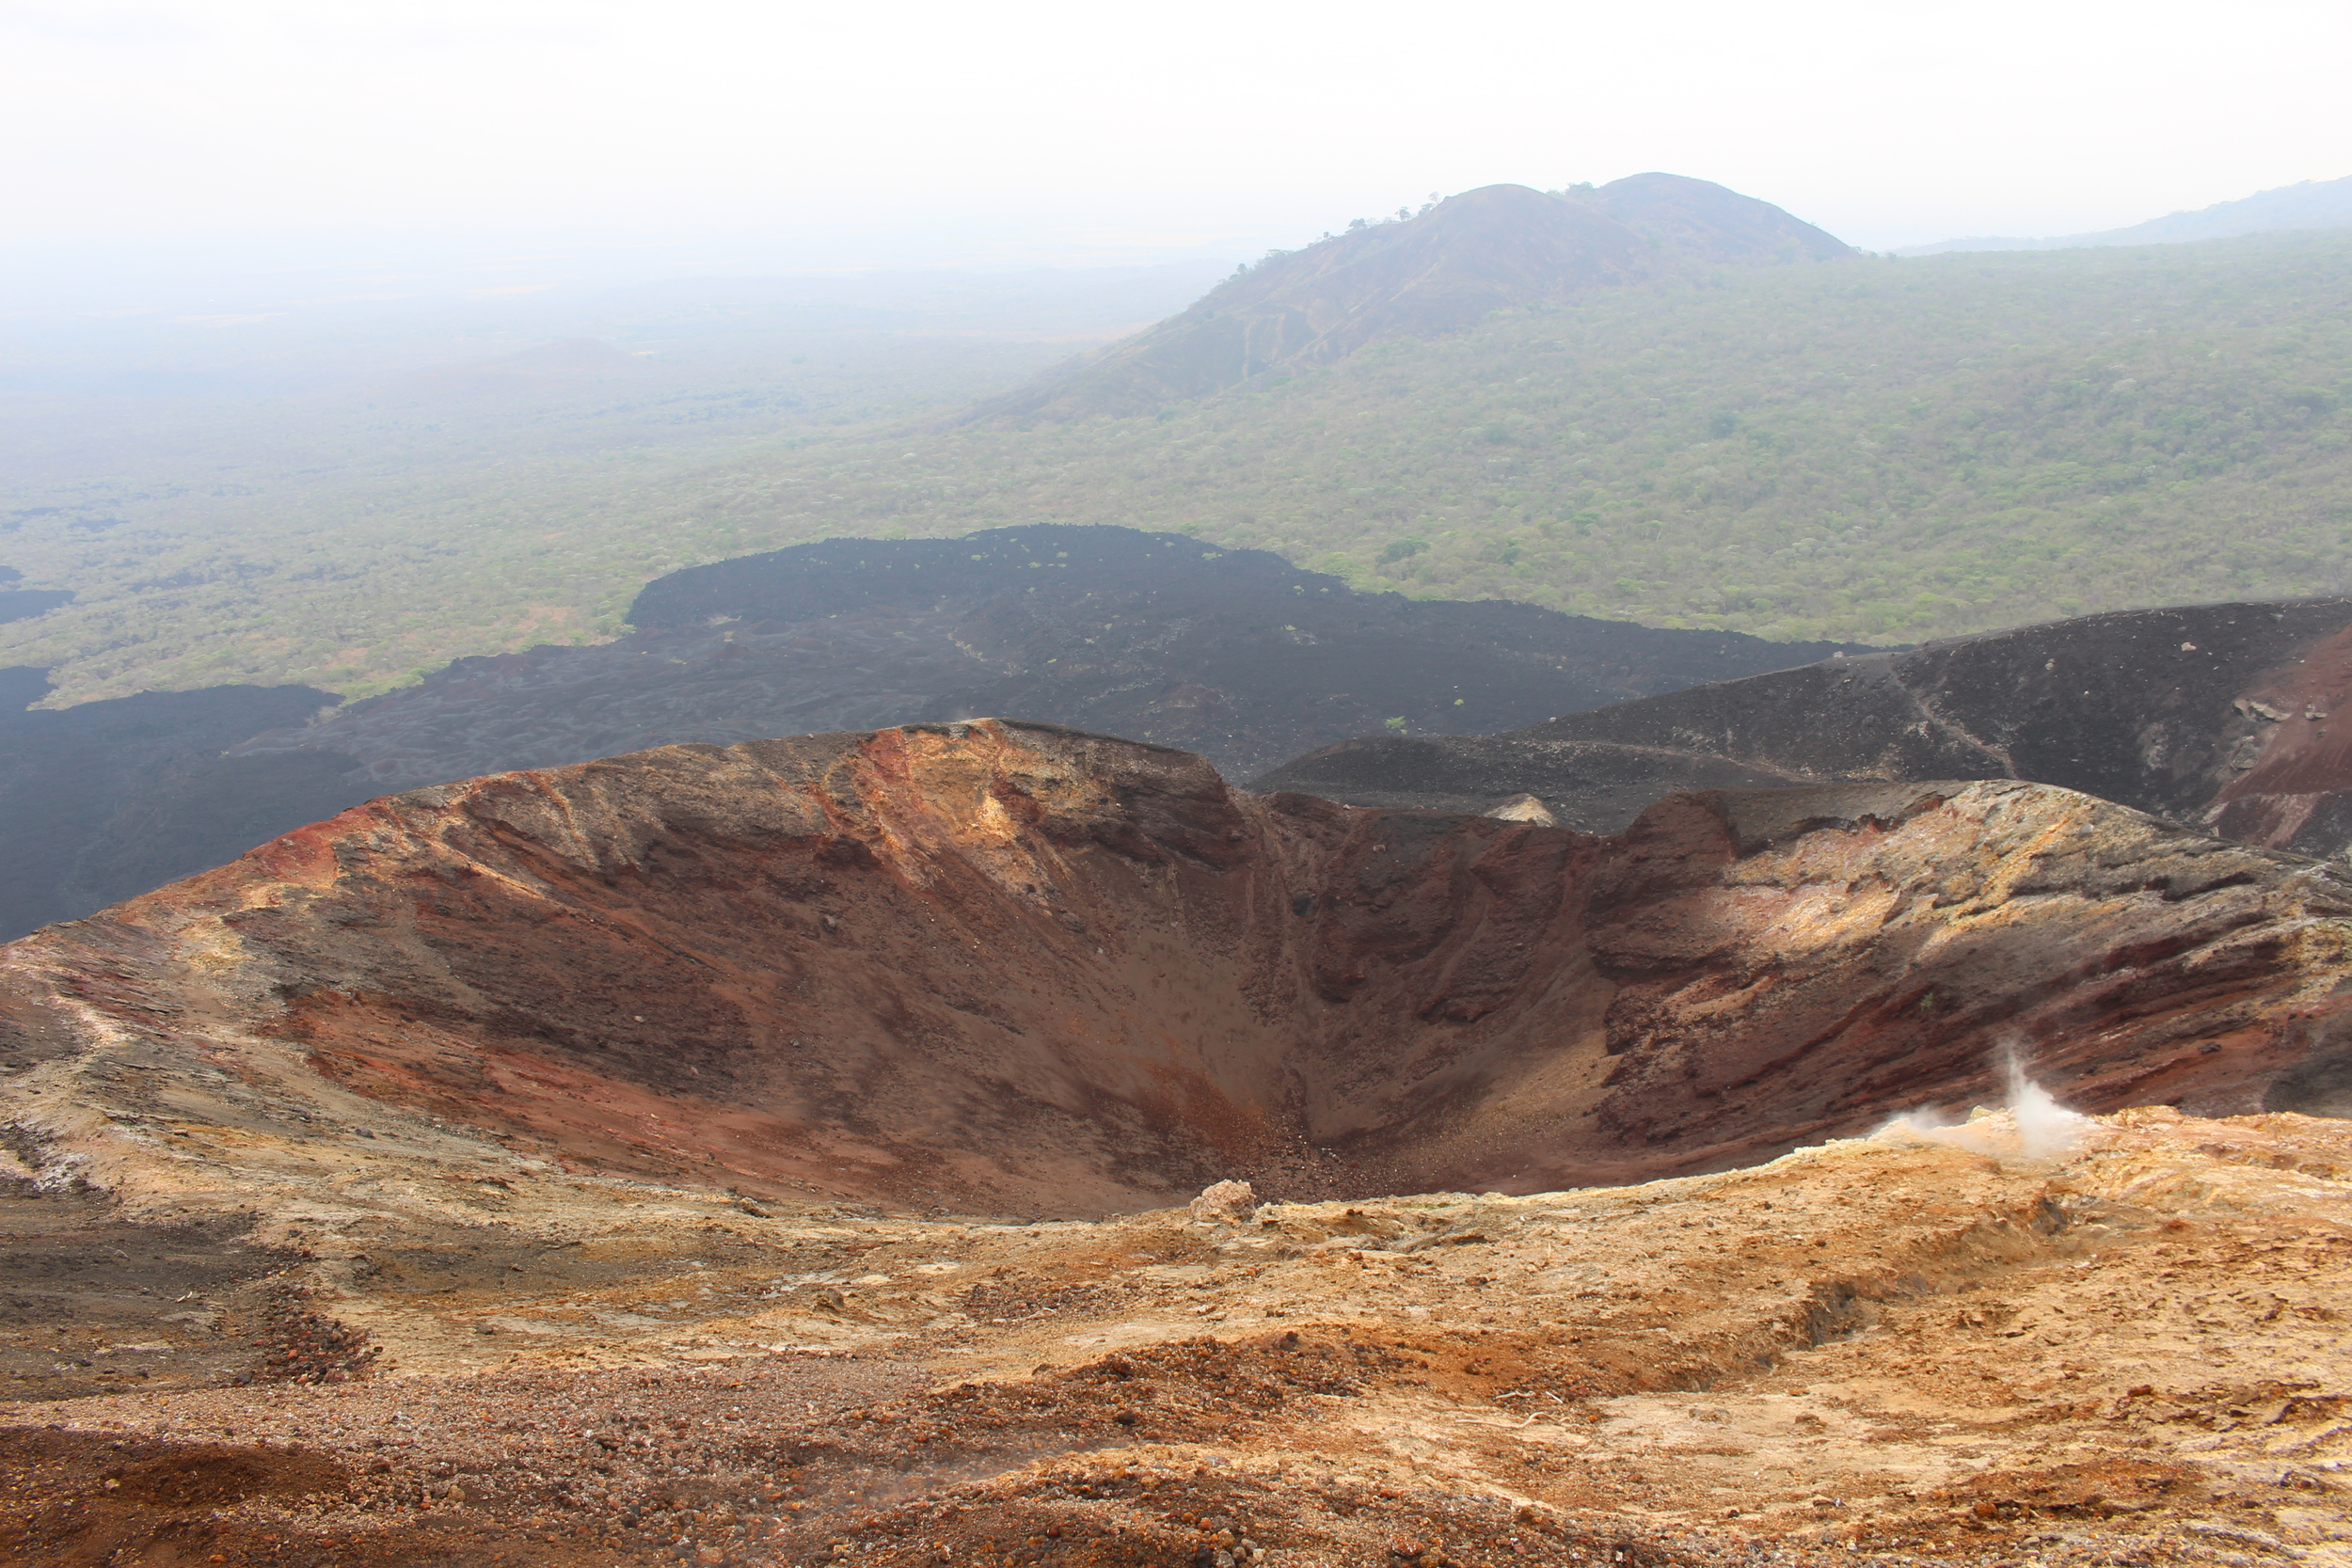 One of Cerro Negro's five craters and the hazy view beyond